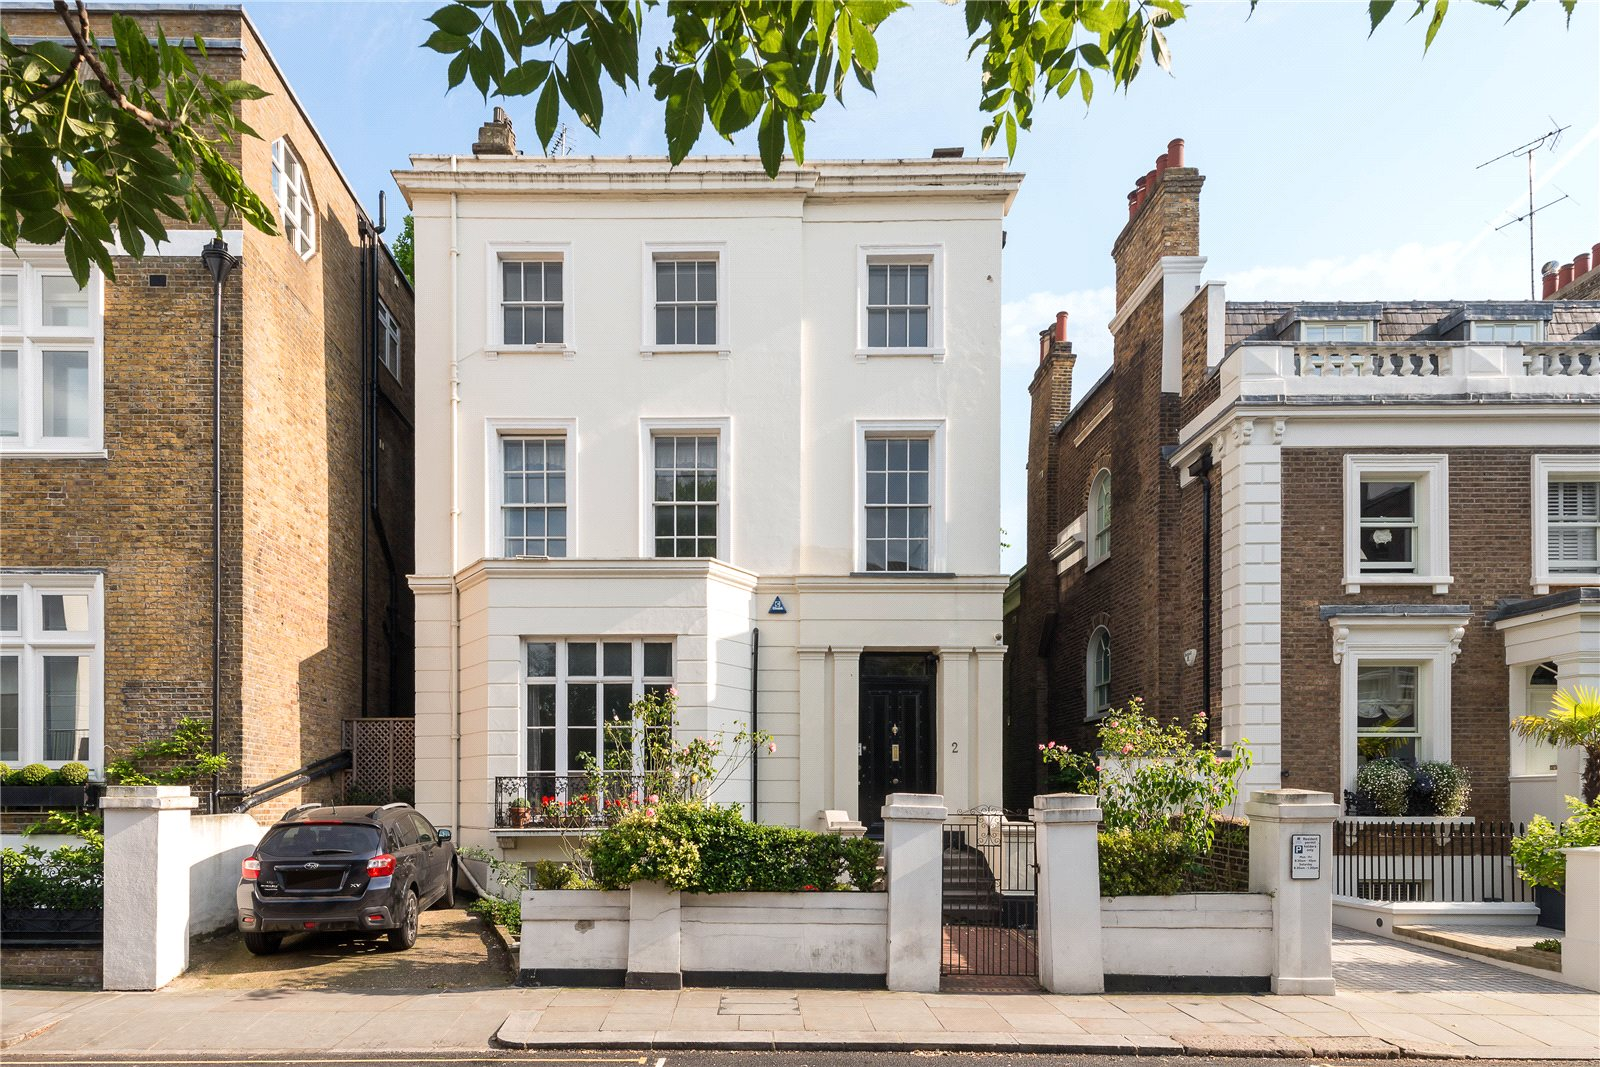 Additional Photo For Property Listing At St Albans Grove Kensington London W8